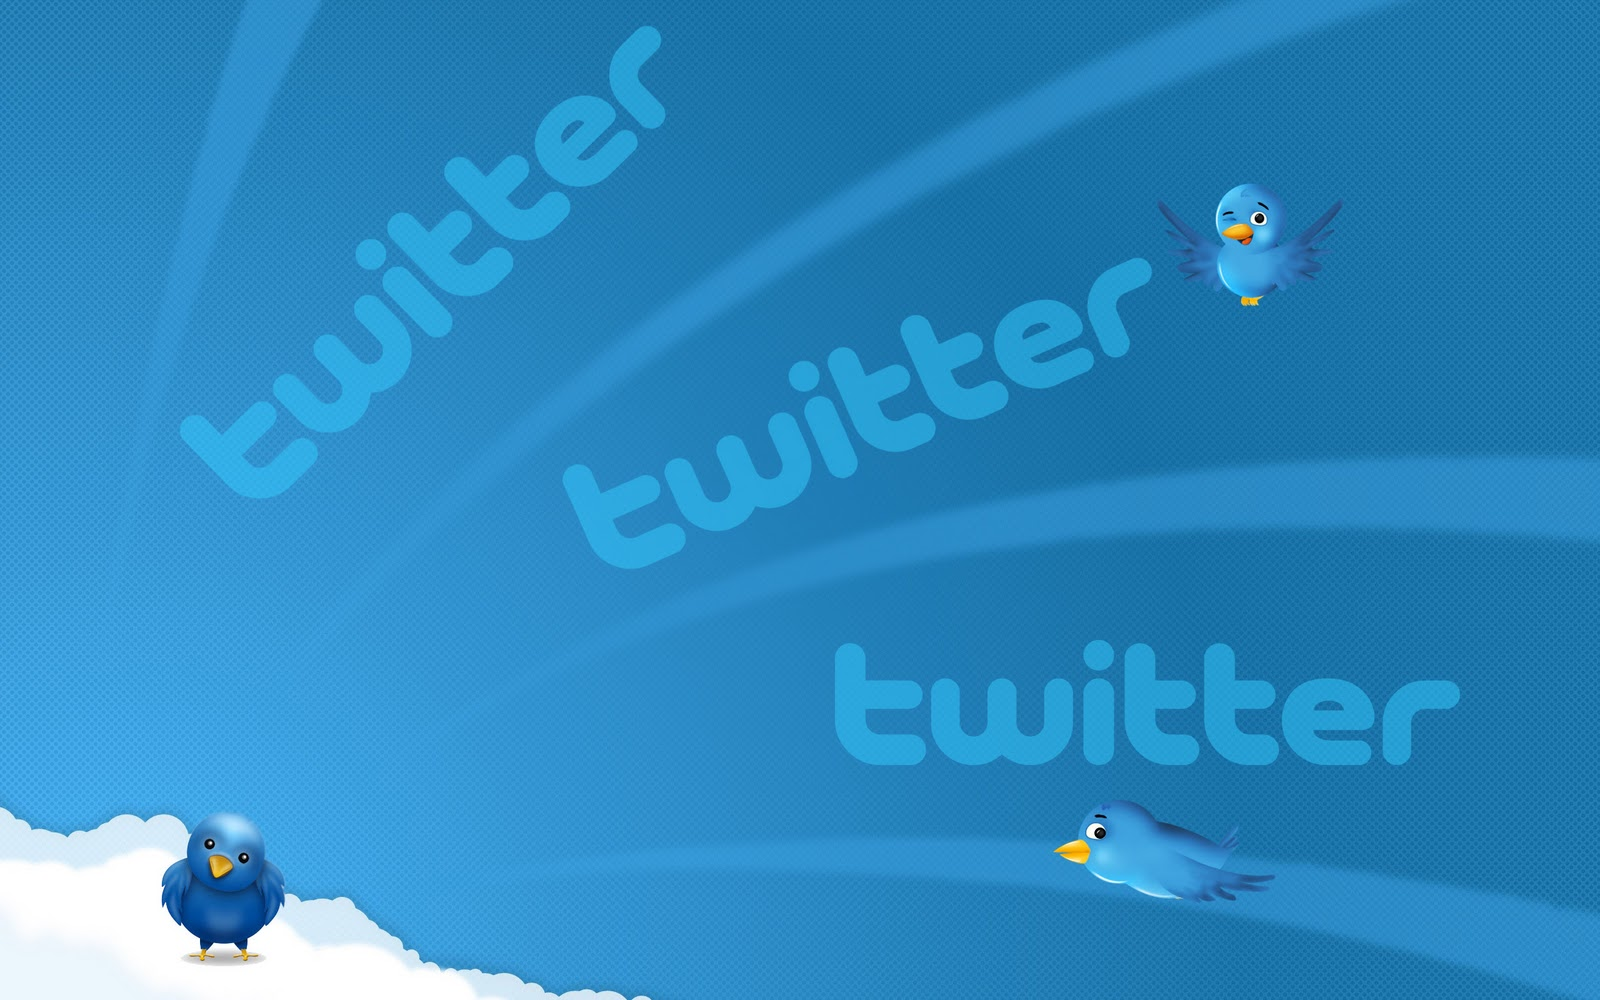 Best Cute Free Twitter Backgrounds Wallpapers